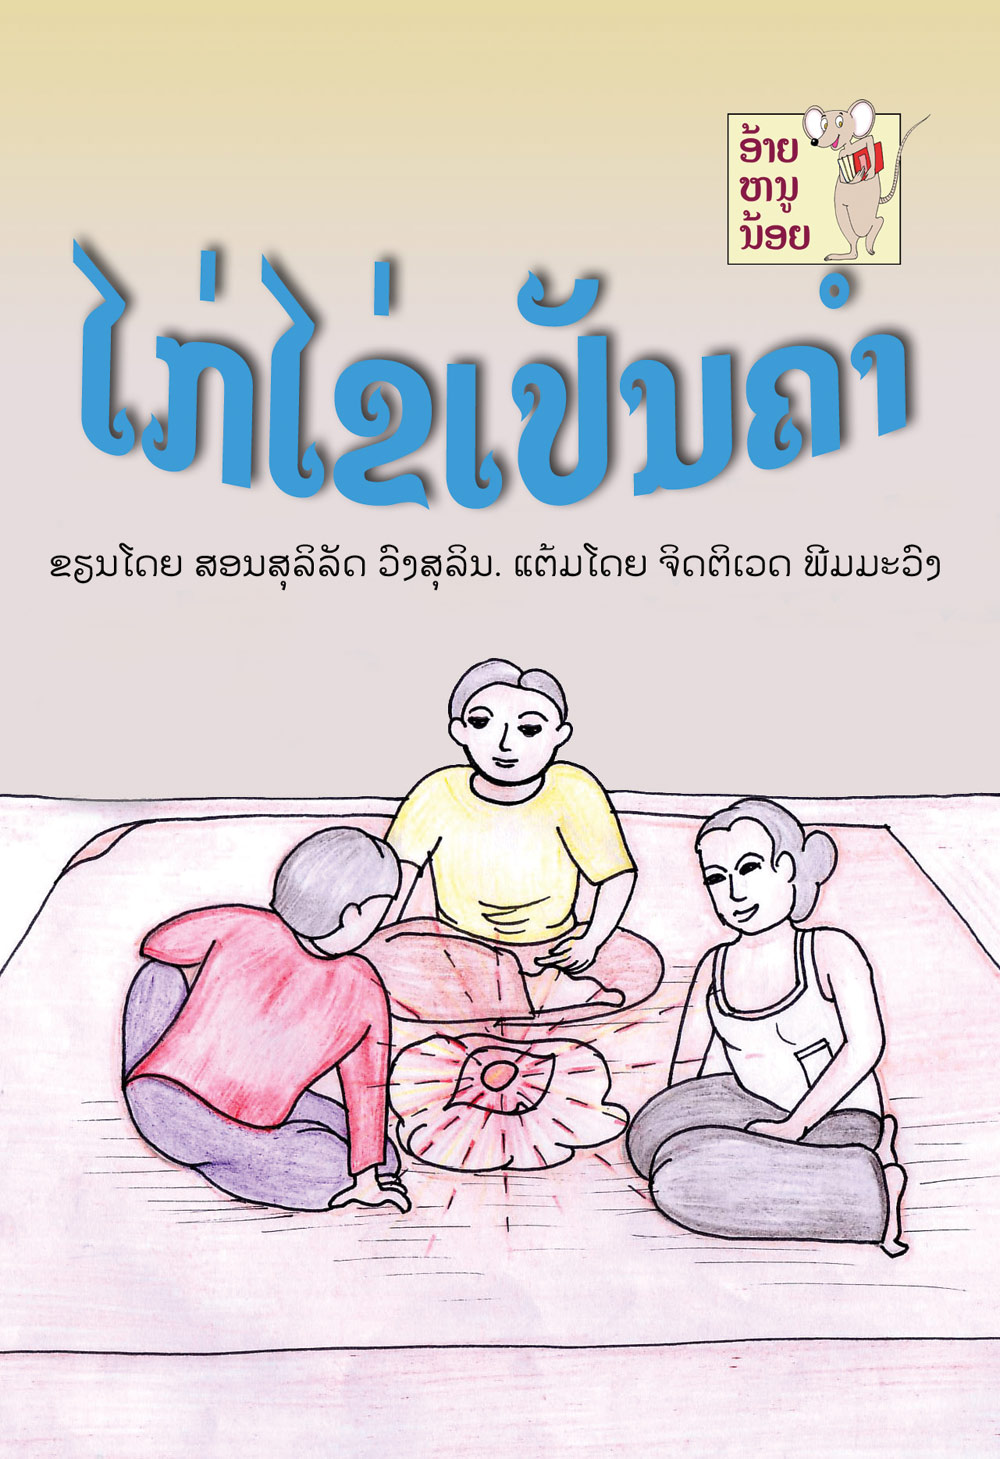 The Chicken that Laid the Golden Eggs large book cover, published in Lao language